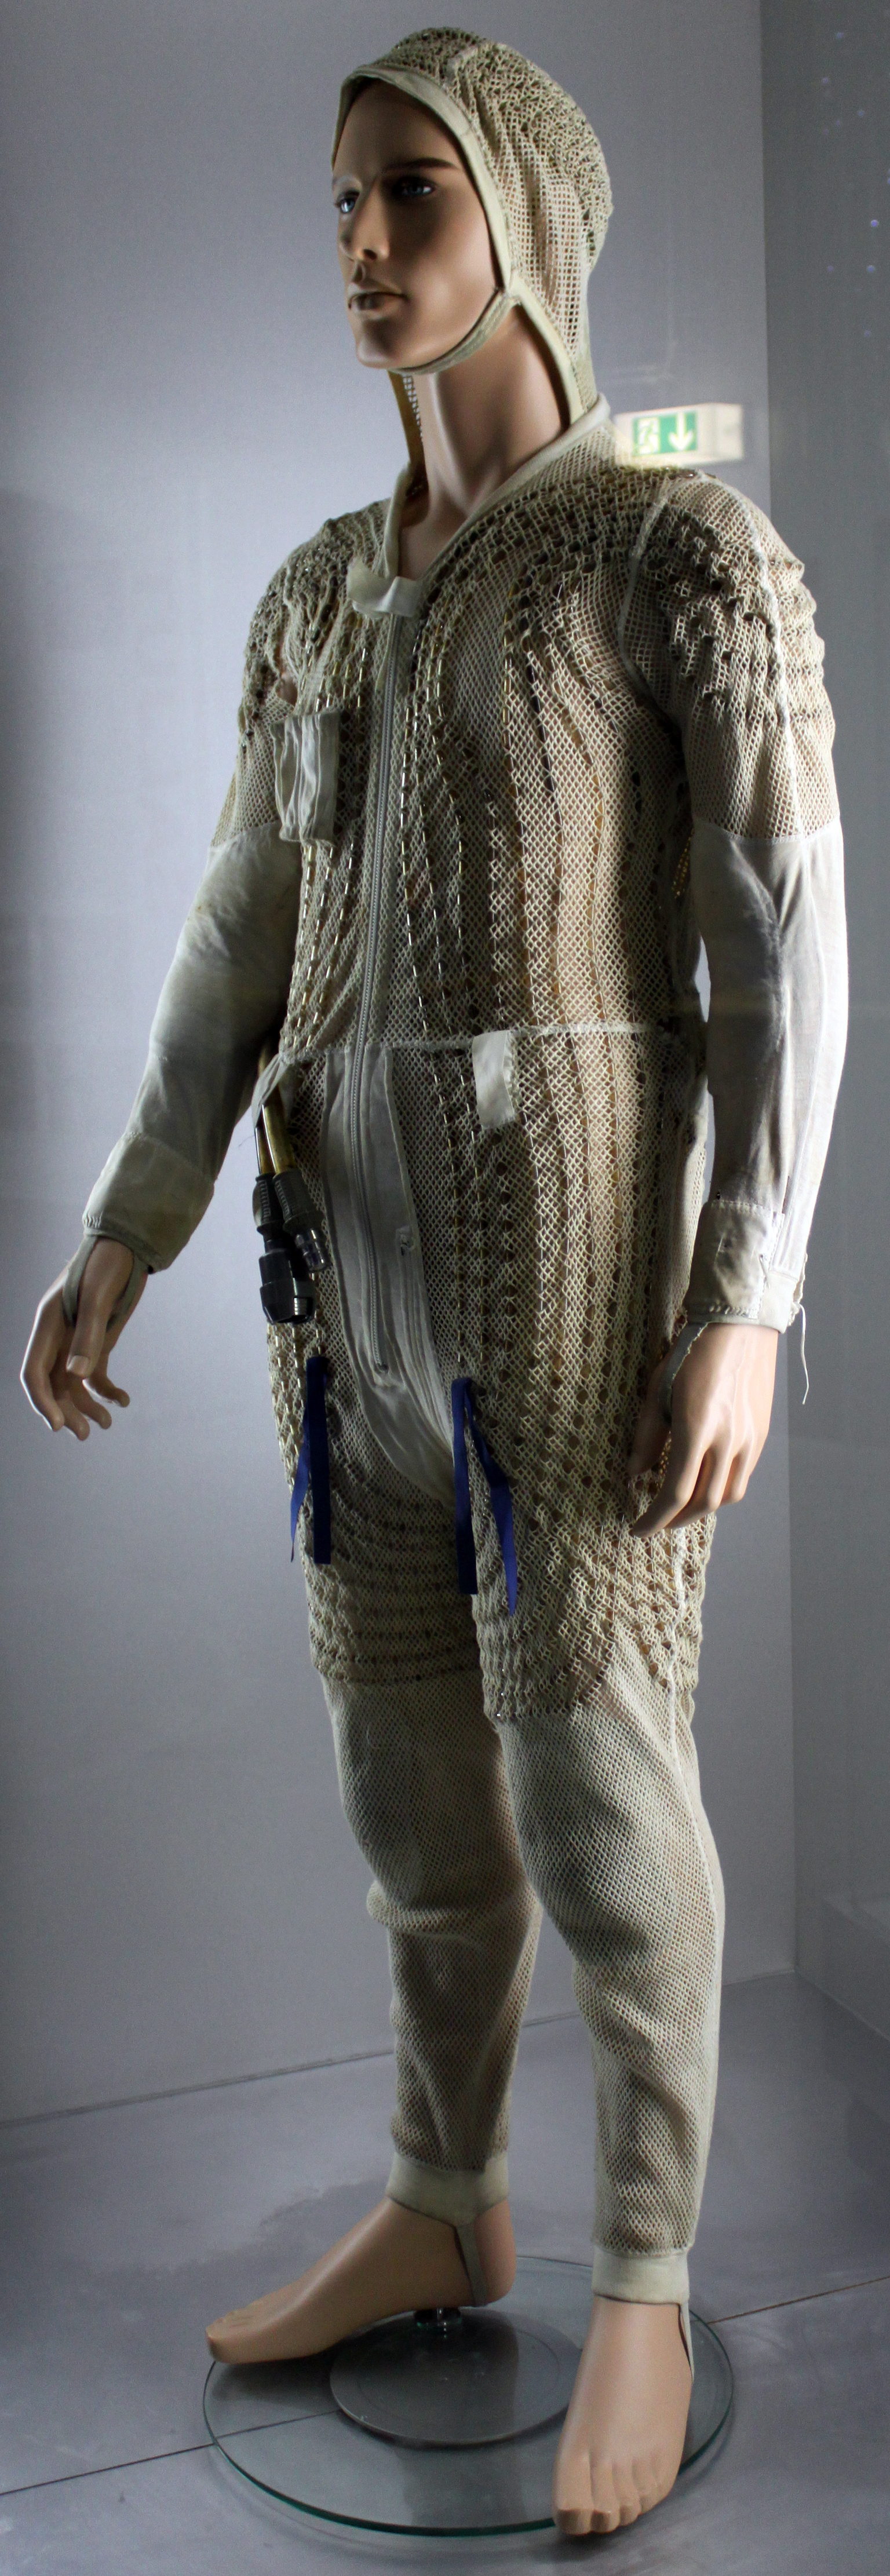 File:2012-10-23 Orlan Cooling Suit anagoria JPG - Wikimedia